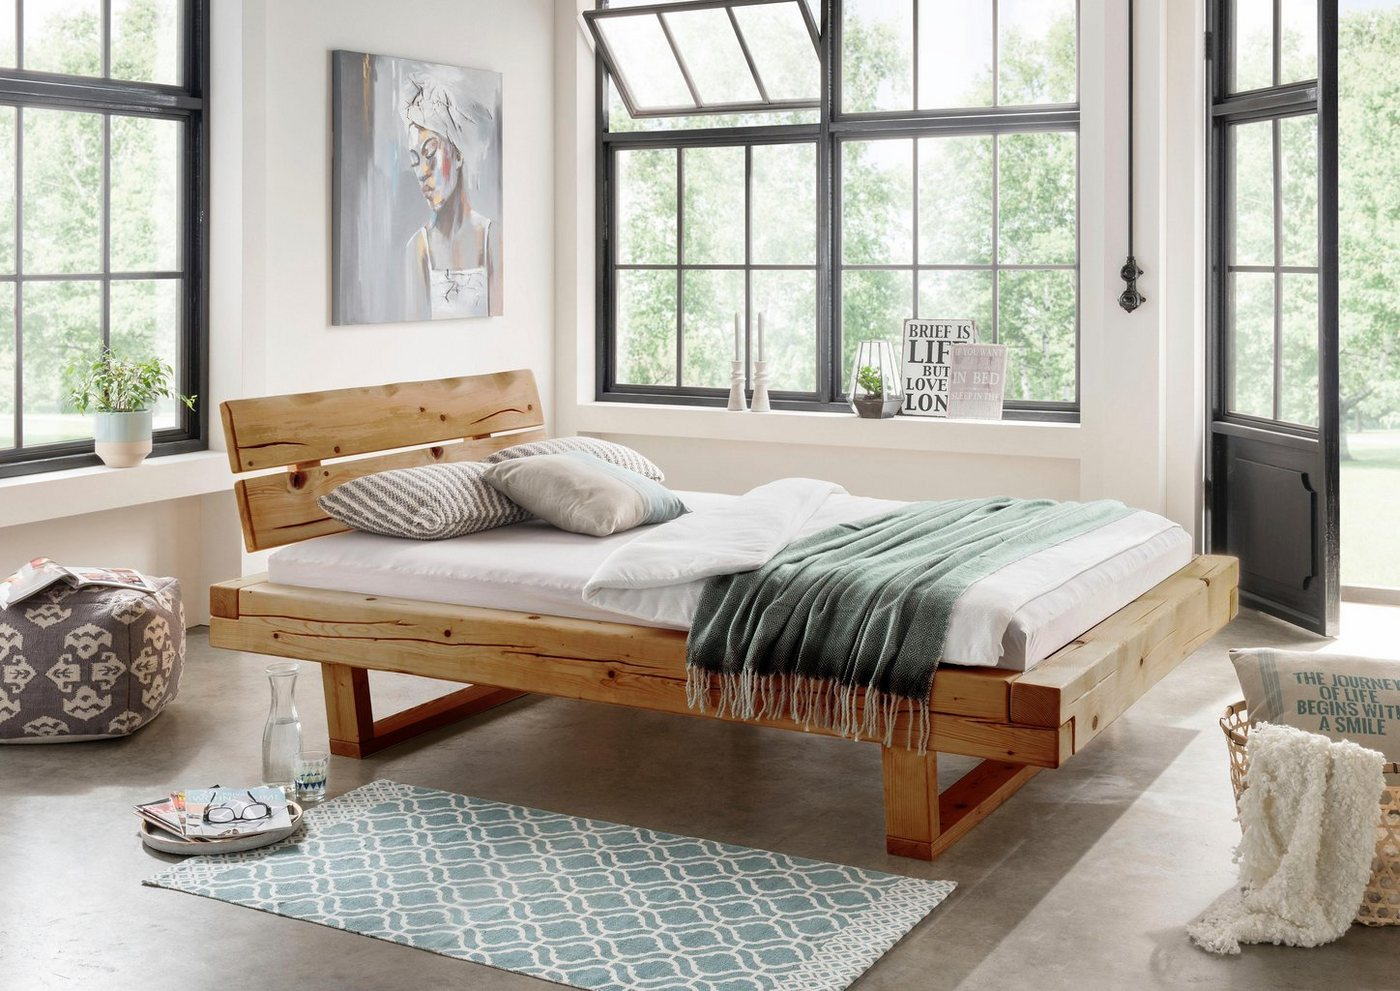 Premium collection by HOME AFFAIRE ledikant Ultima van massief hout in balk-look